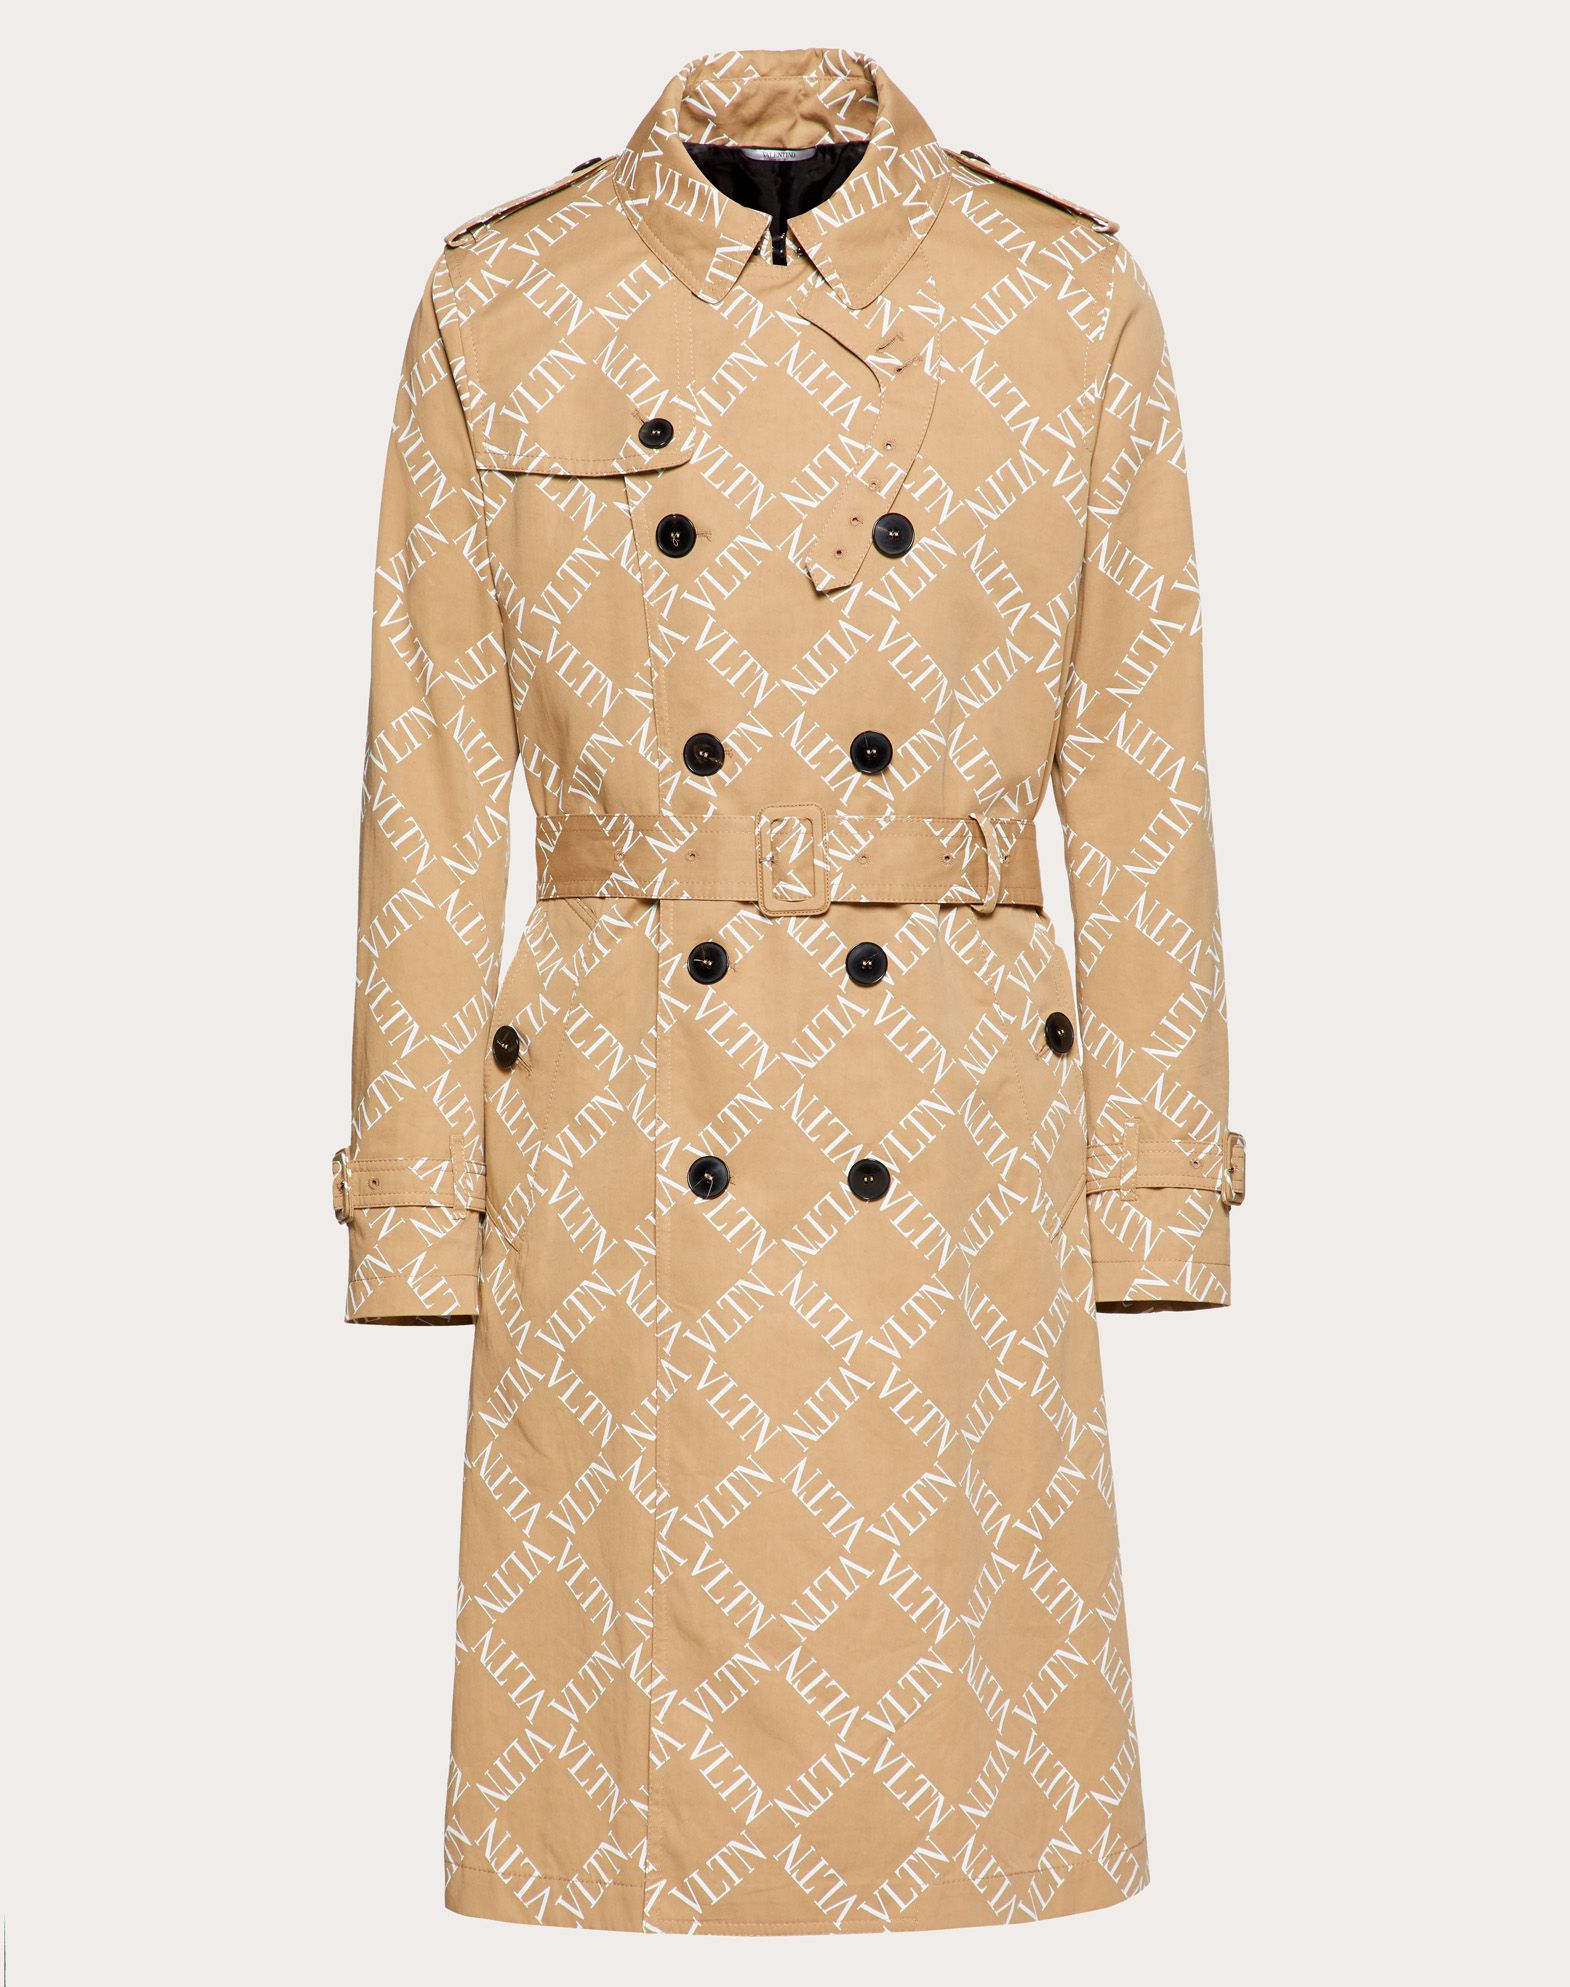 TRENCH COAT WITH VLTN GRID PRINT